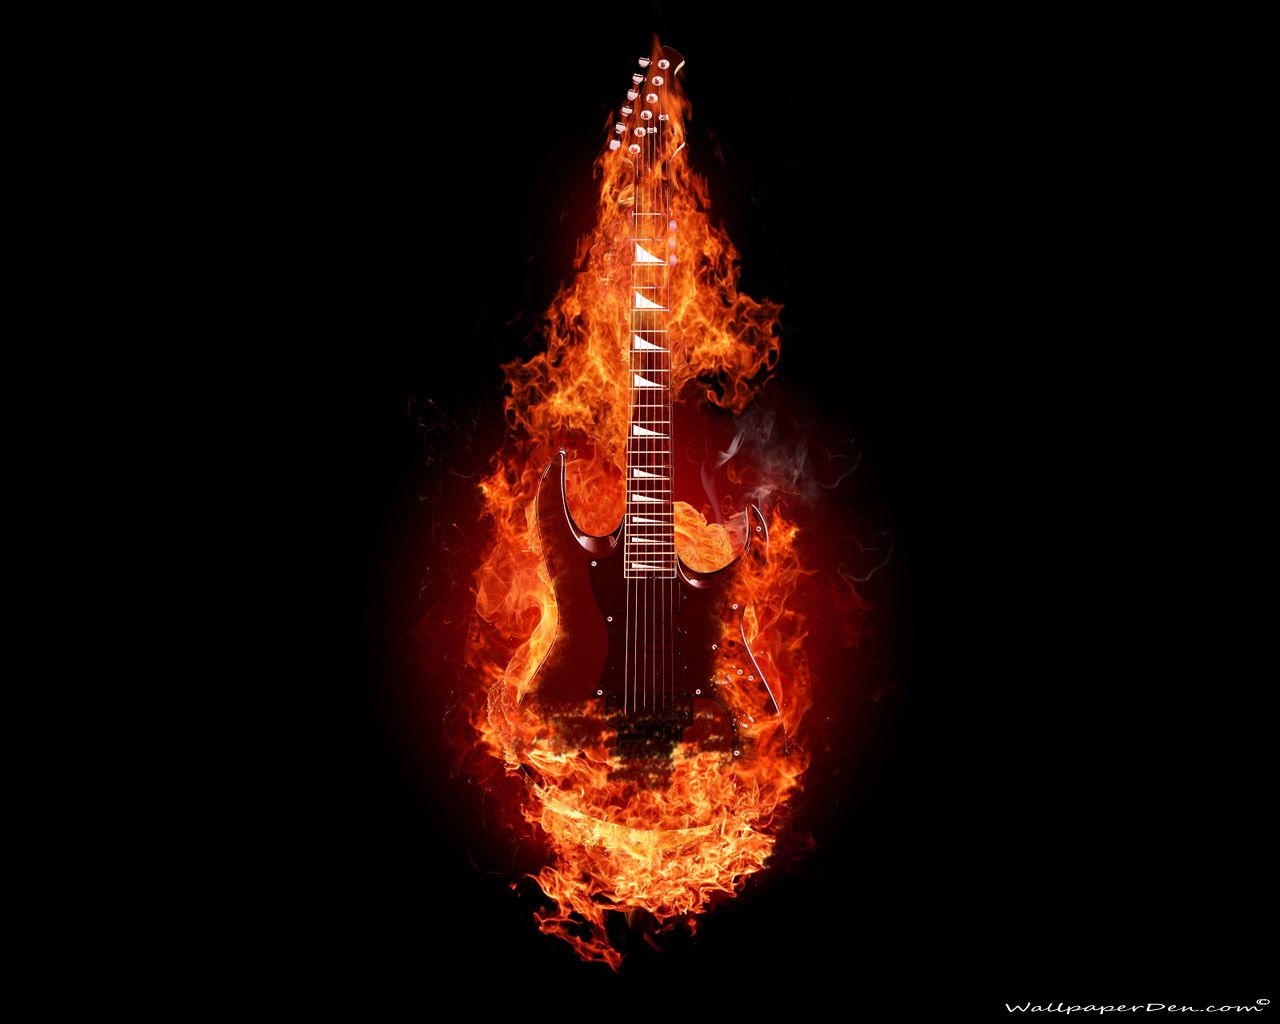 guitar on fire wallpapers - photo #5